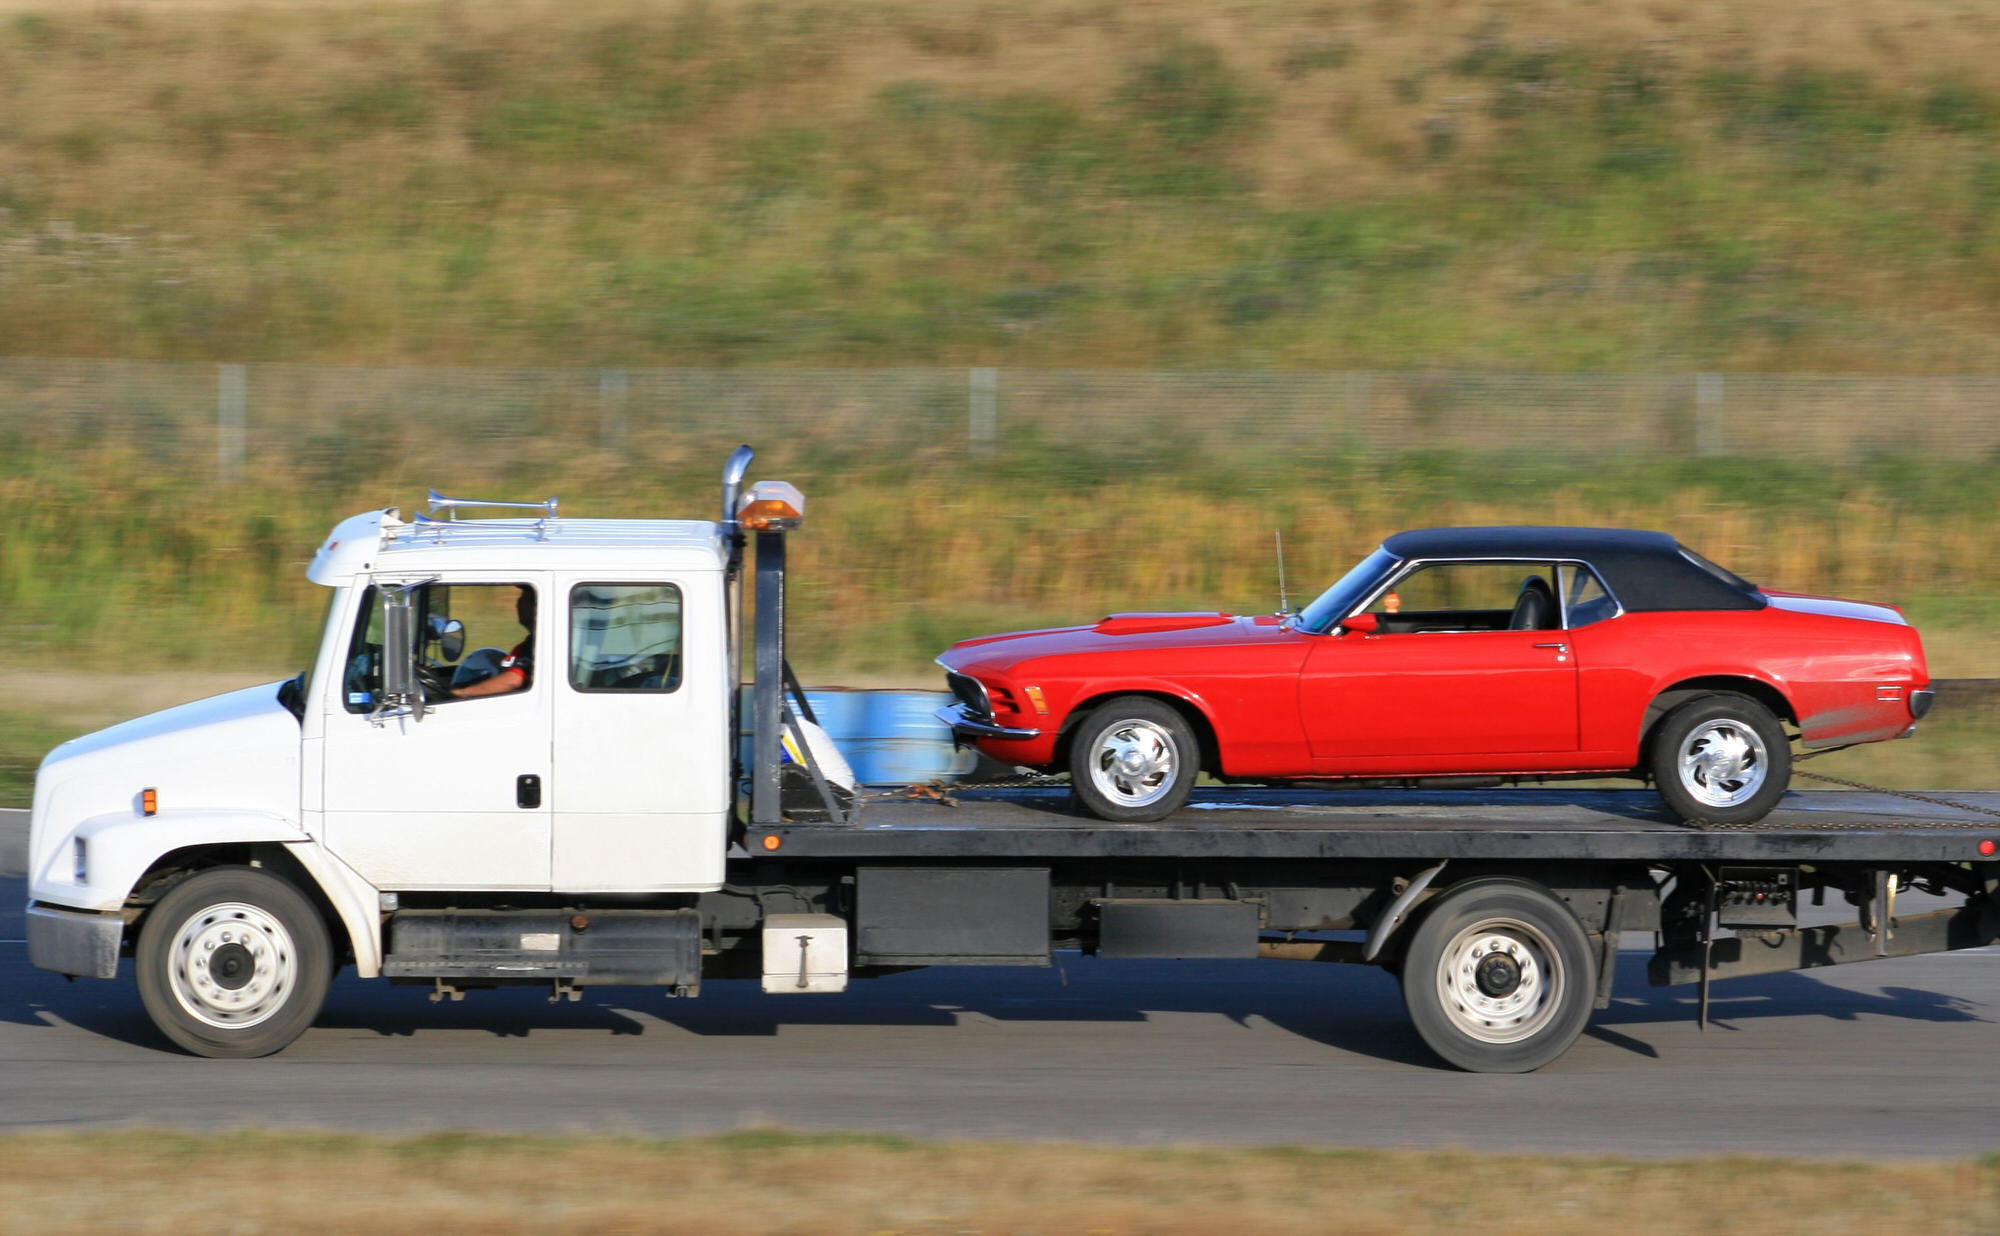 Is It Worth Getting a Tow?